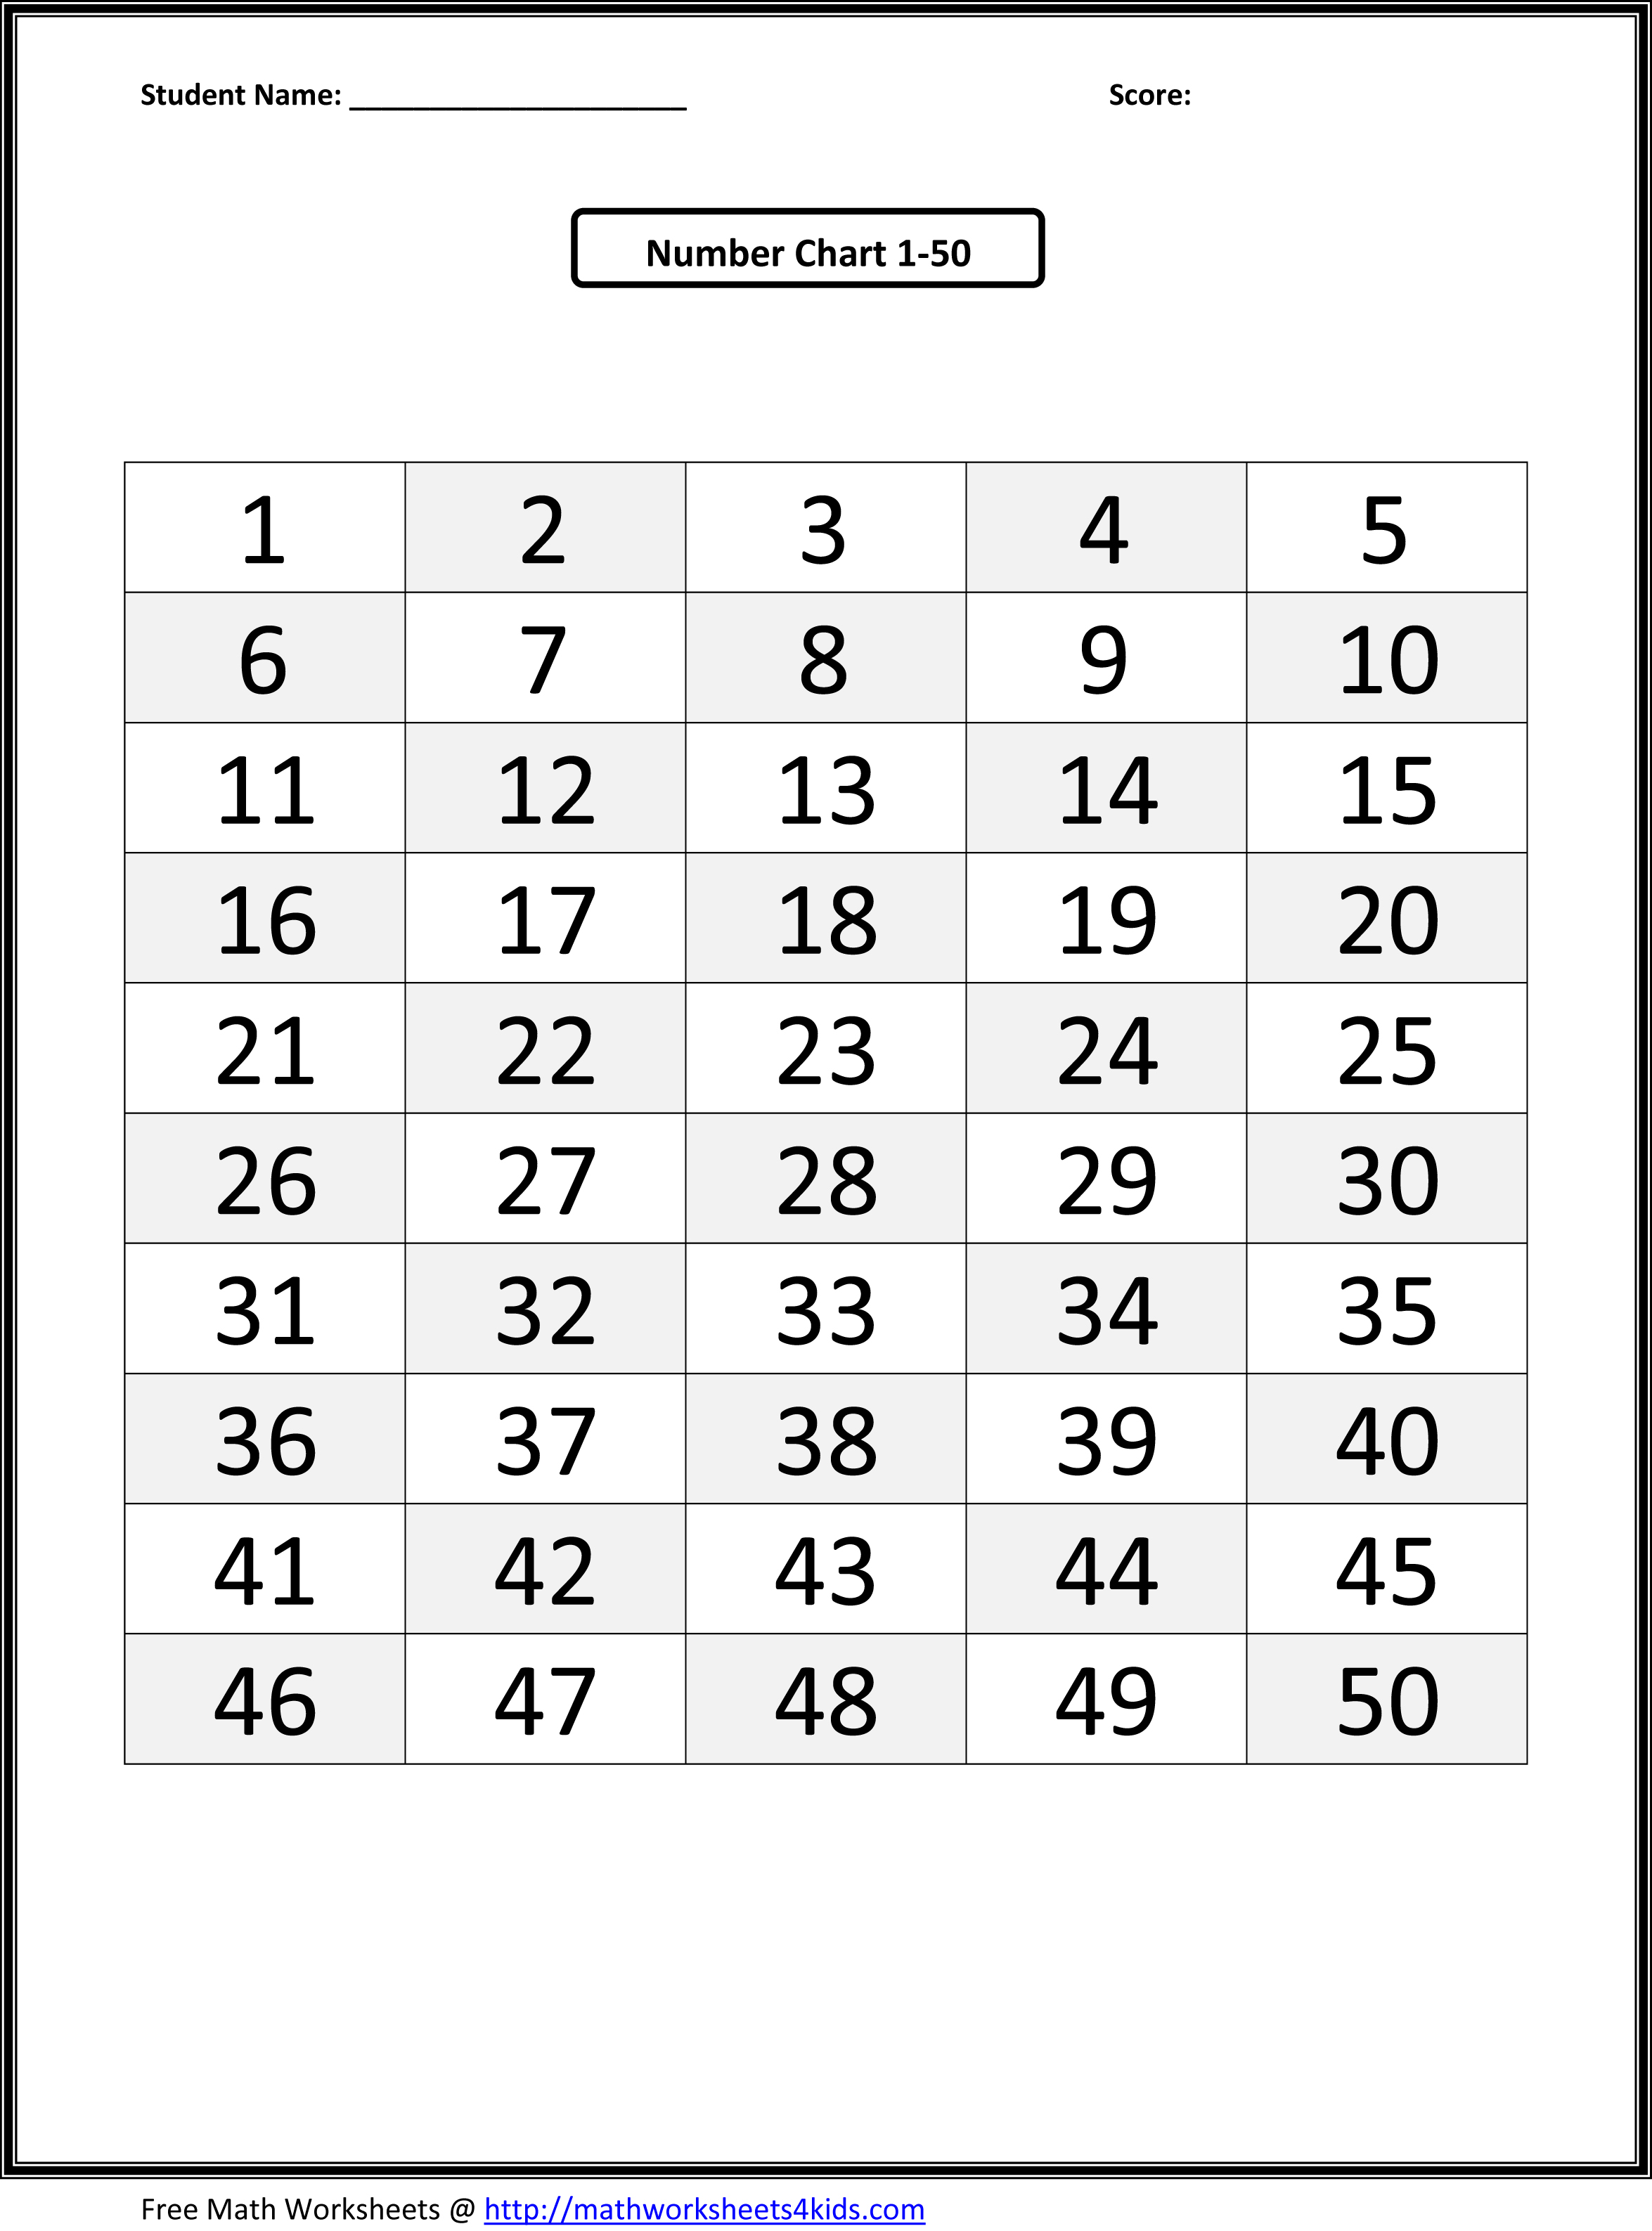 6 Best Images Of Printable Number Chart 1 50